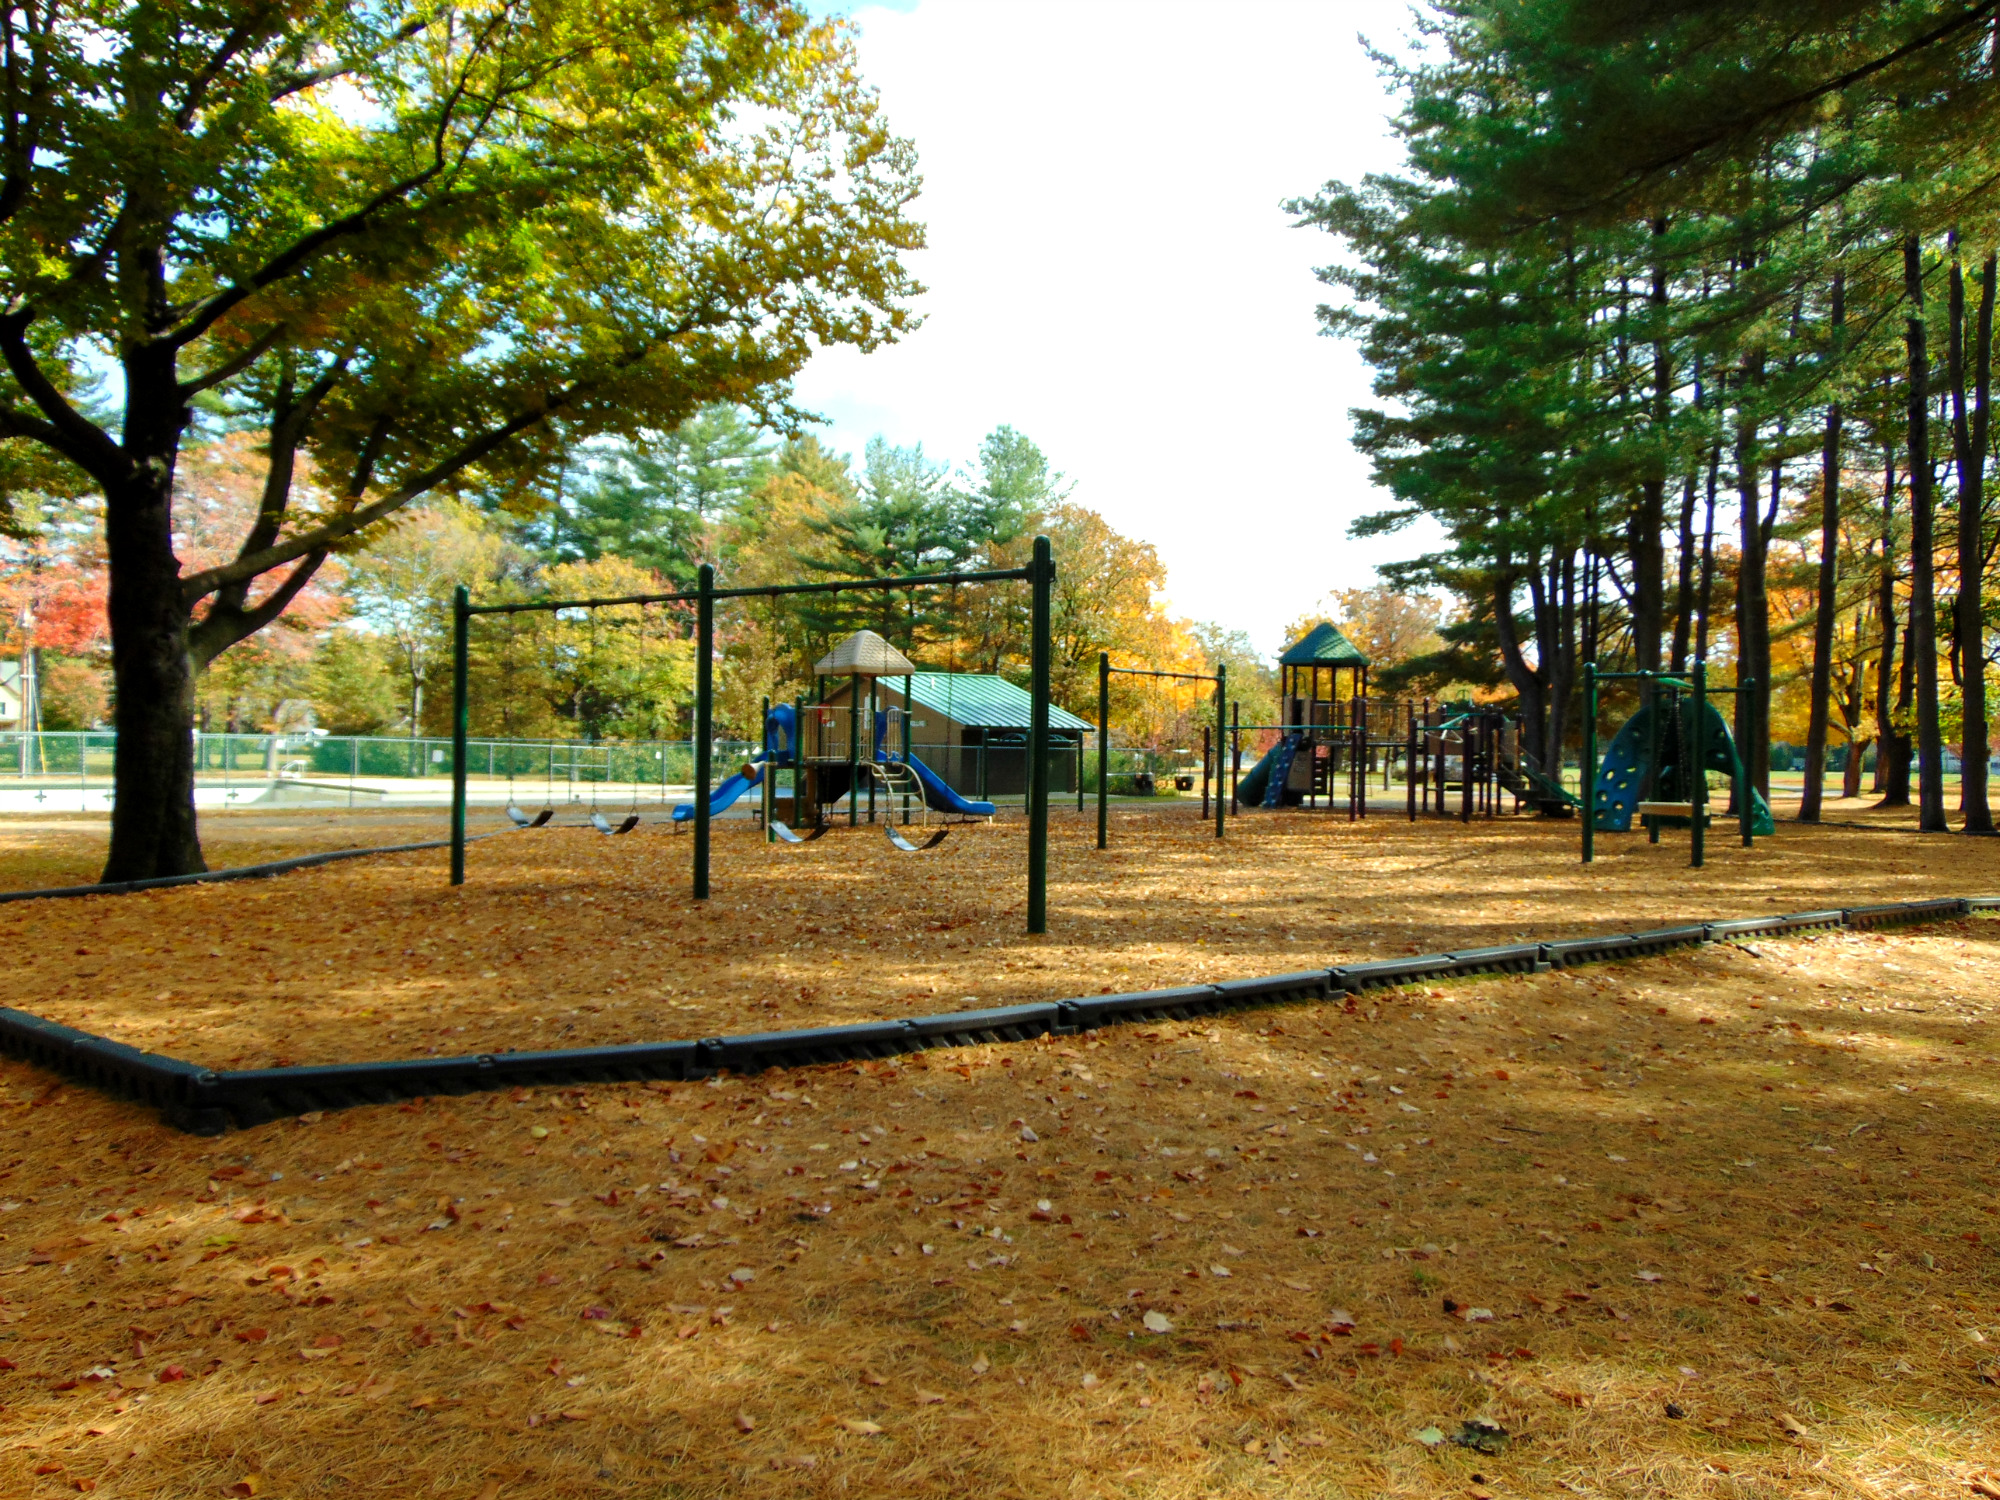 outdoor recreation in southern new hampshire from hiking trails to parks and playground